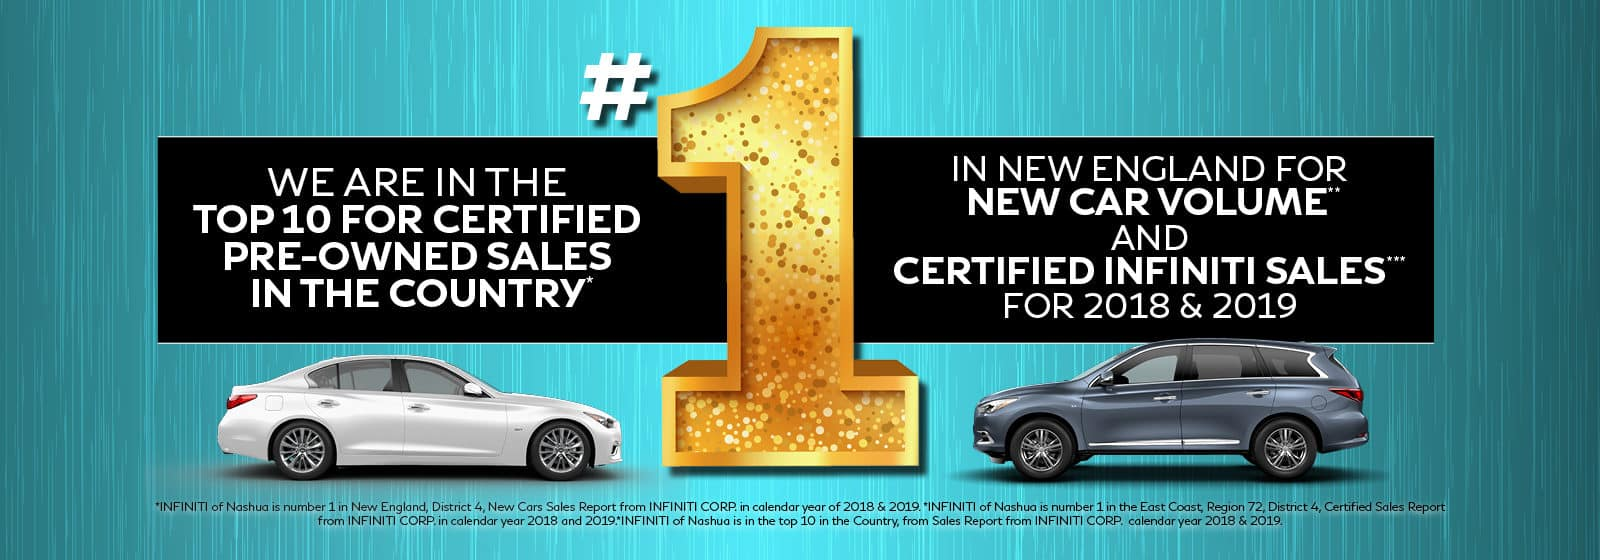 INFINITI of Nashua is in the top 10 for CPO sales in the country for 2018 and 2019.